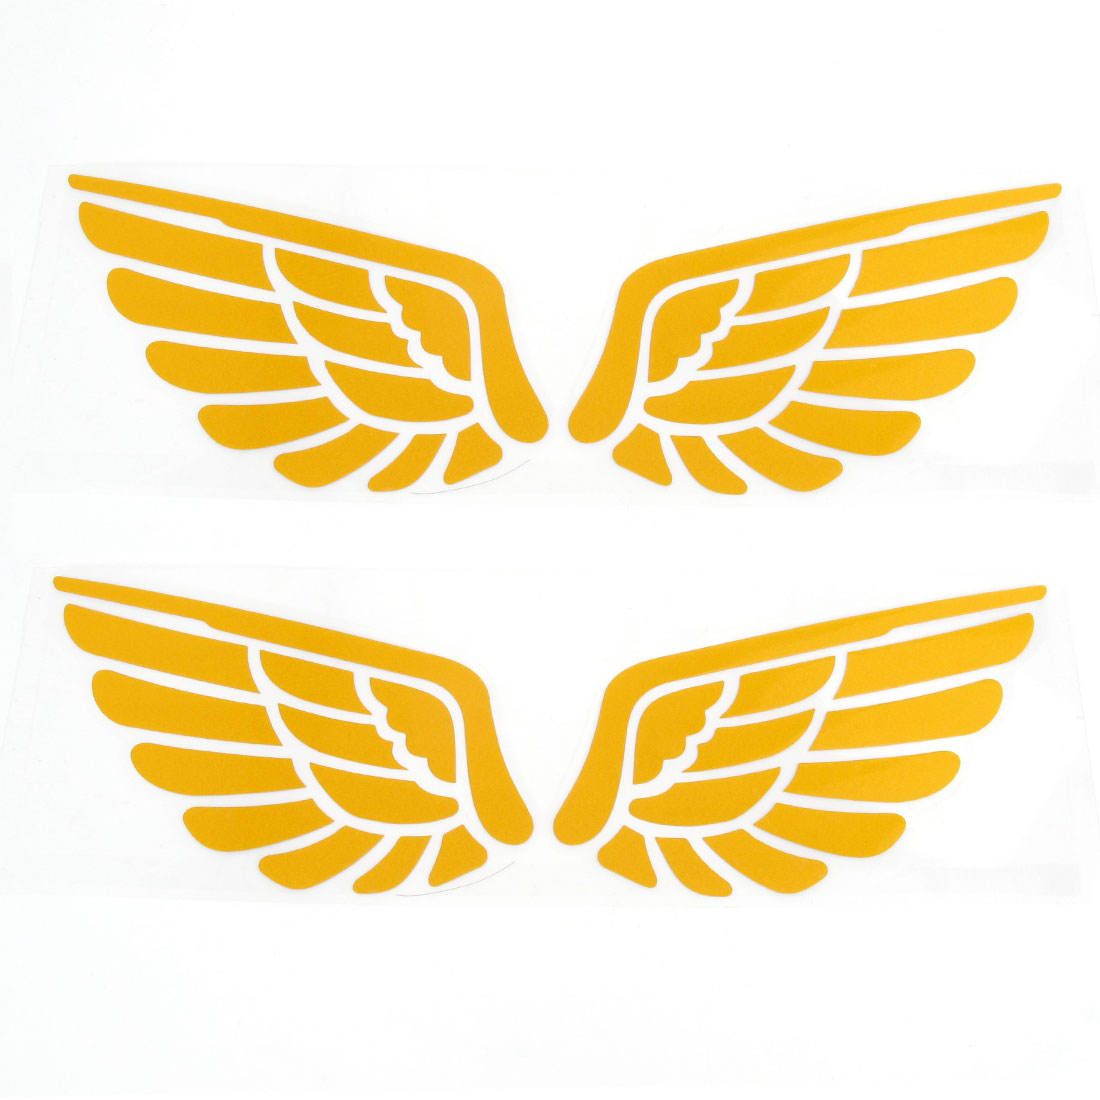 2 Pairs Yellow Wing Styling Plastic Decal Sticker for Car Motorcycle Reflective